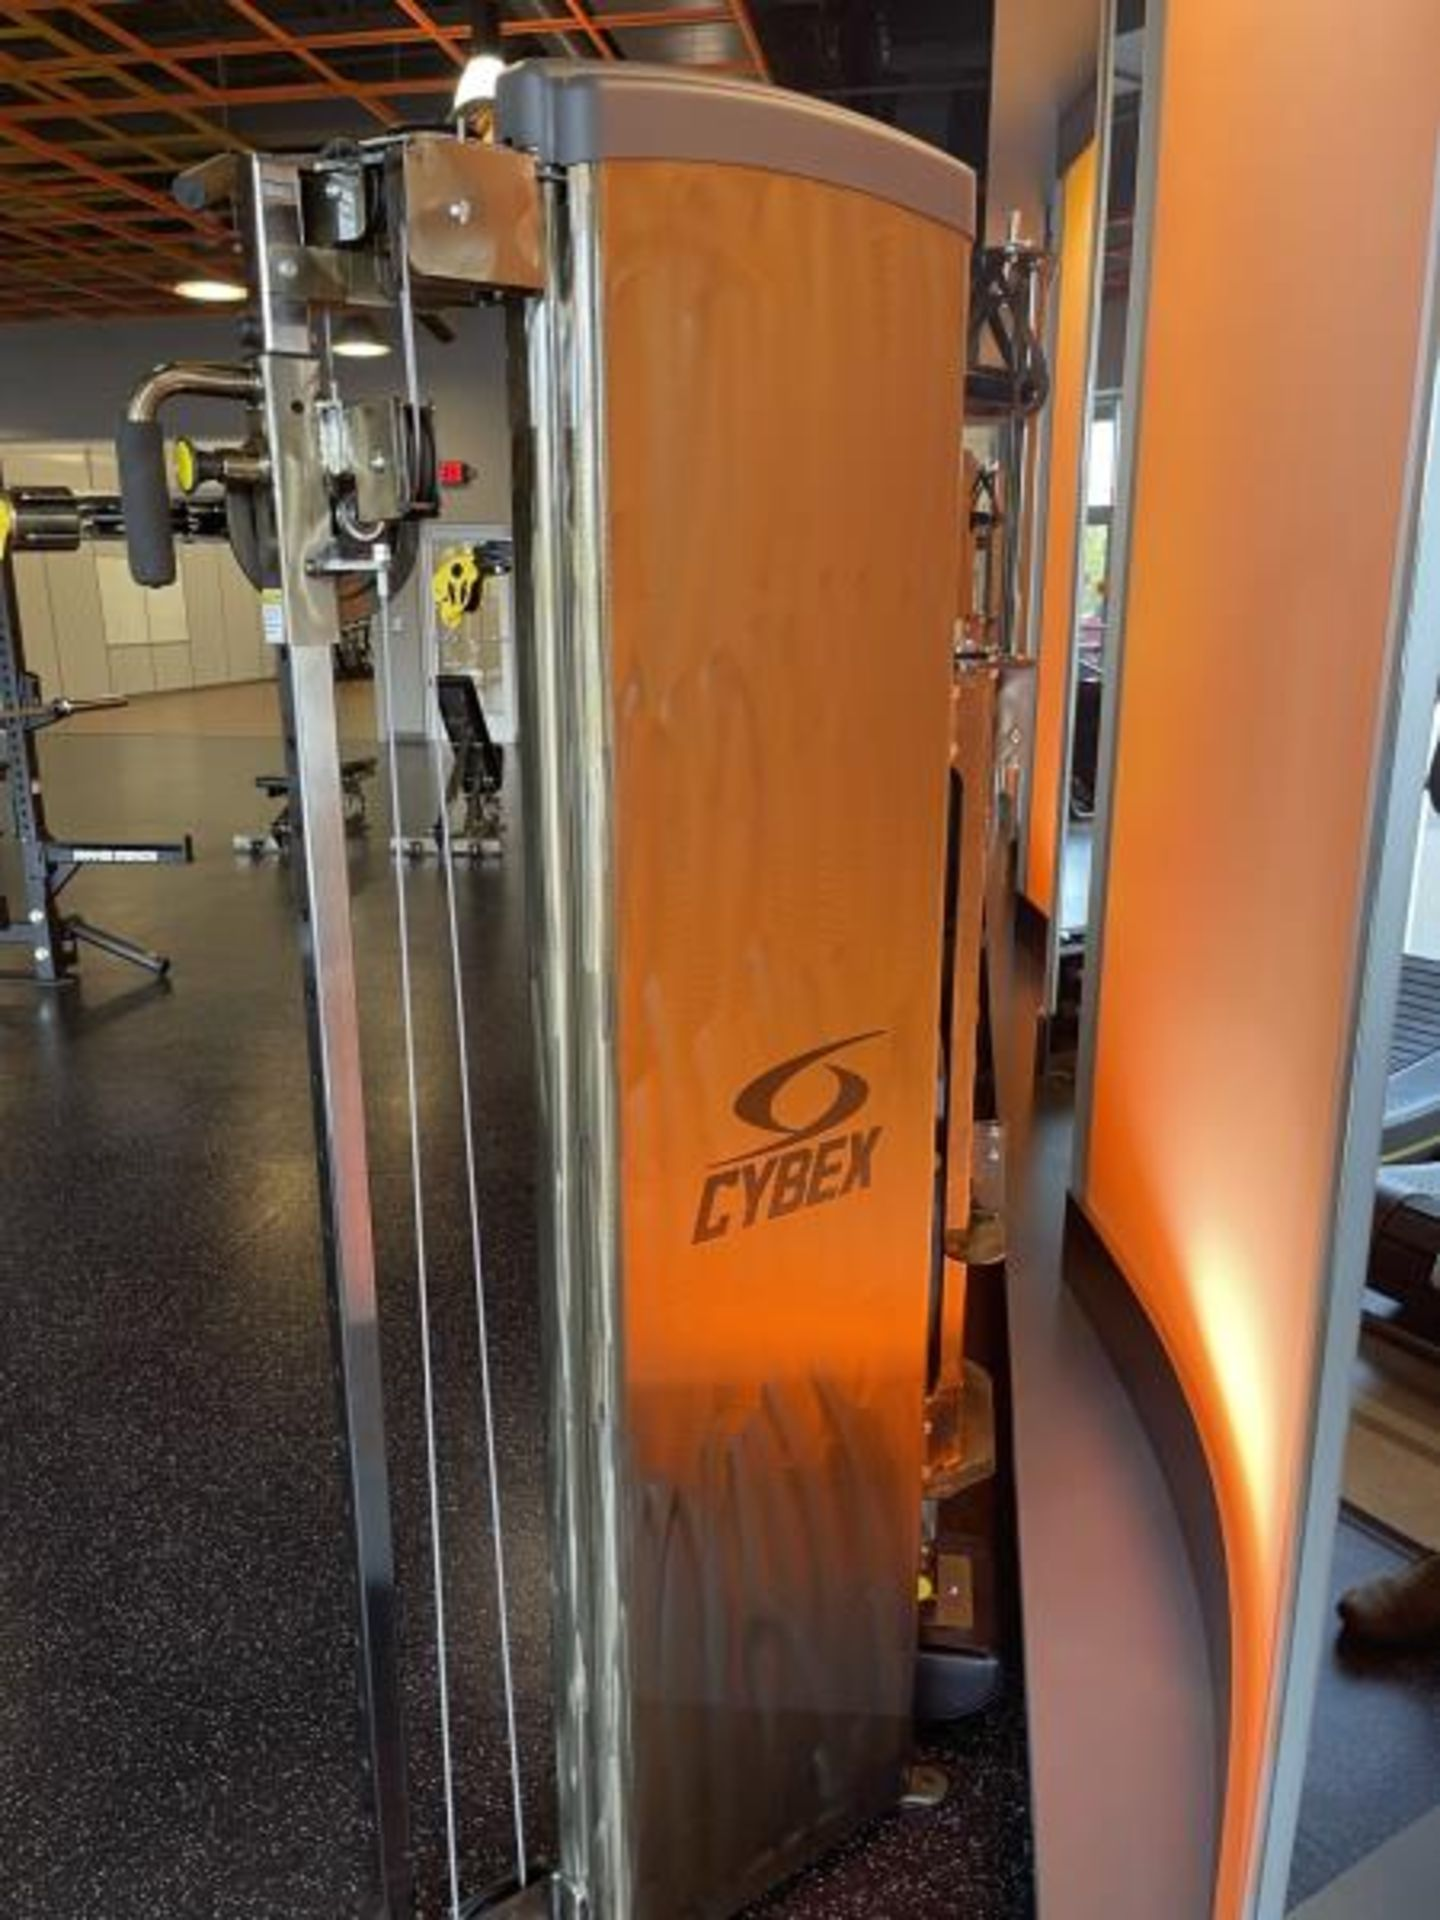 Cybex Bravo All-In-One Functional Trainer M: 8830 - Image 3 of 4